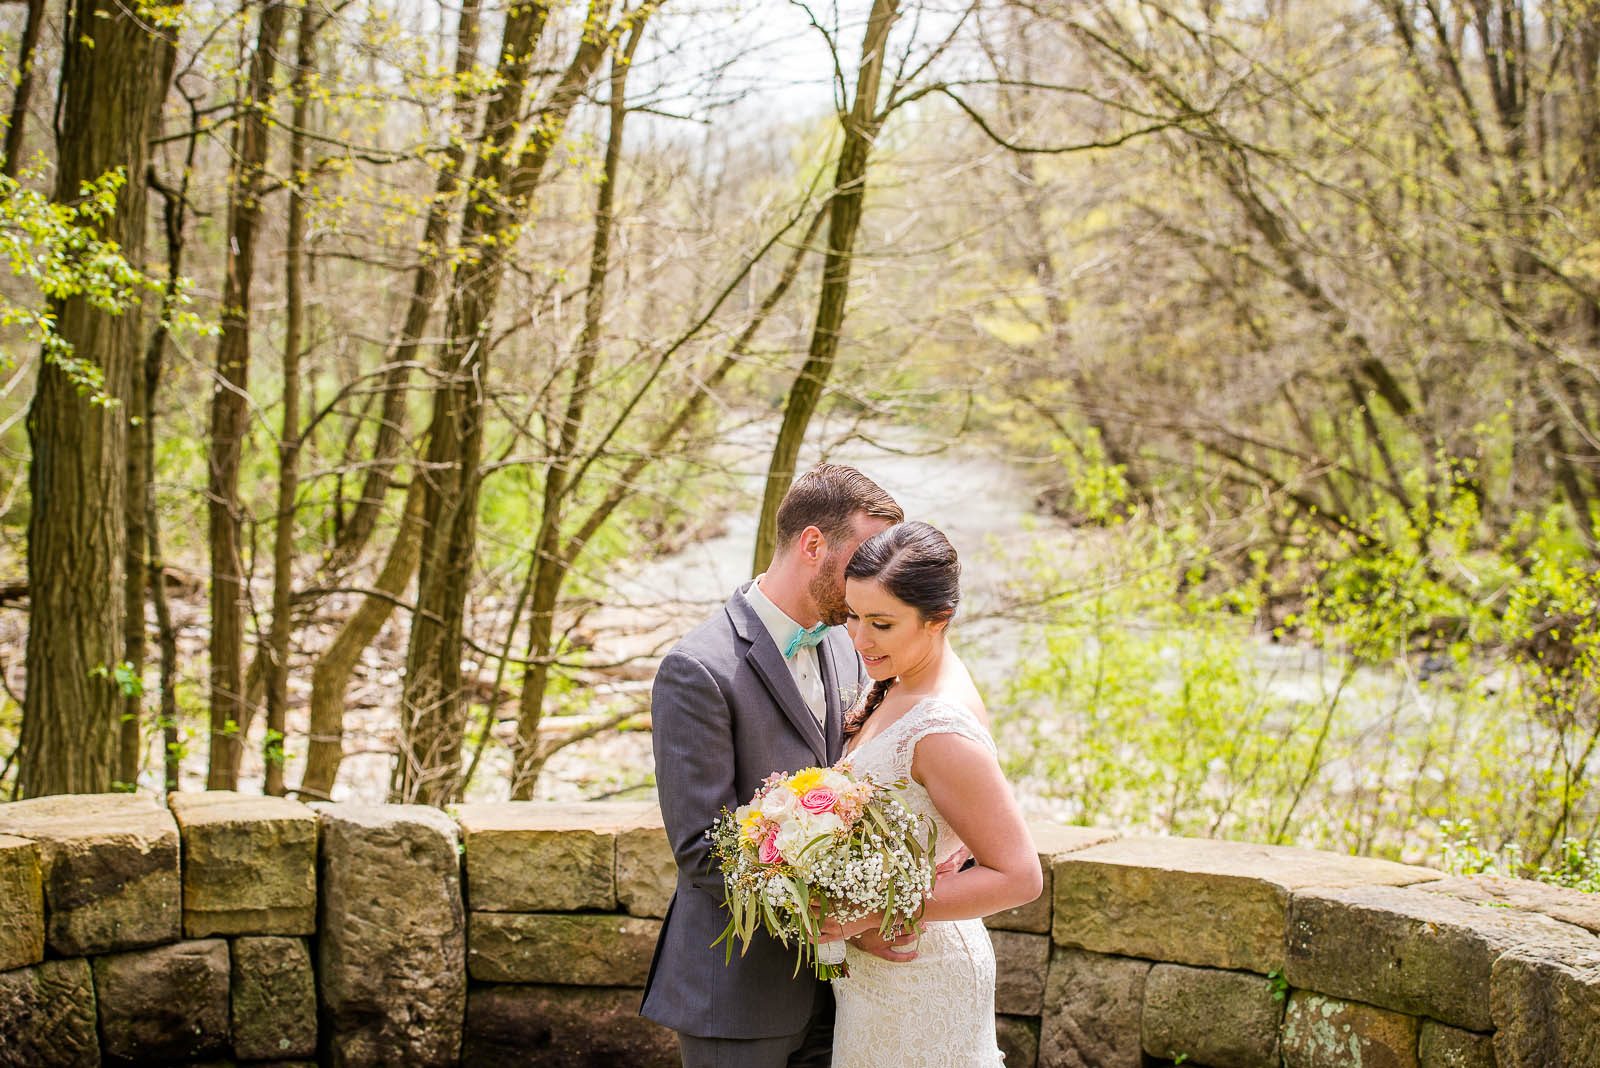 Eric_and_Christy_Photography_Blog_Katie_Travis_Wedding-17